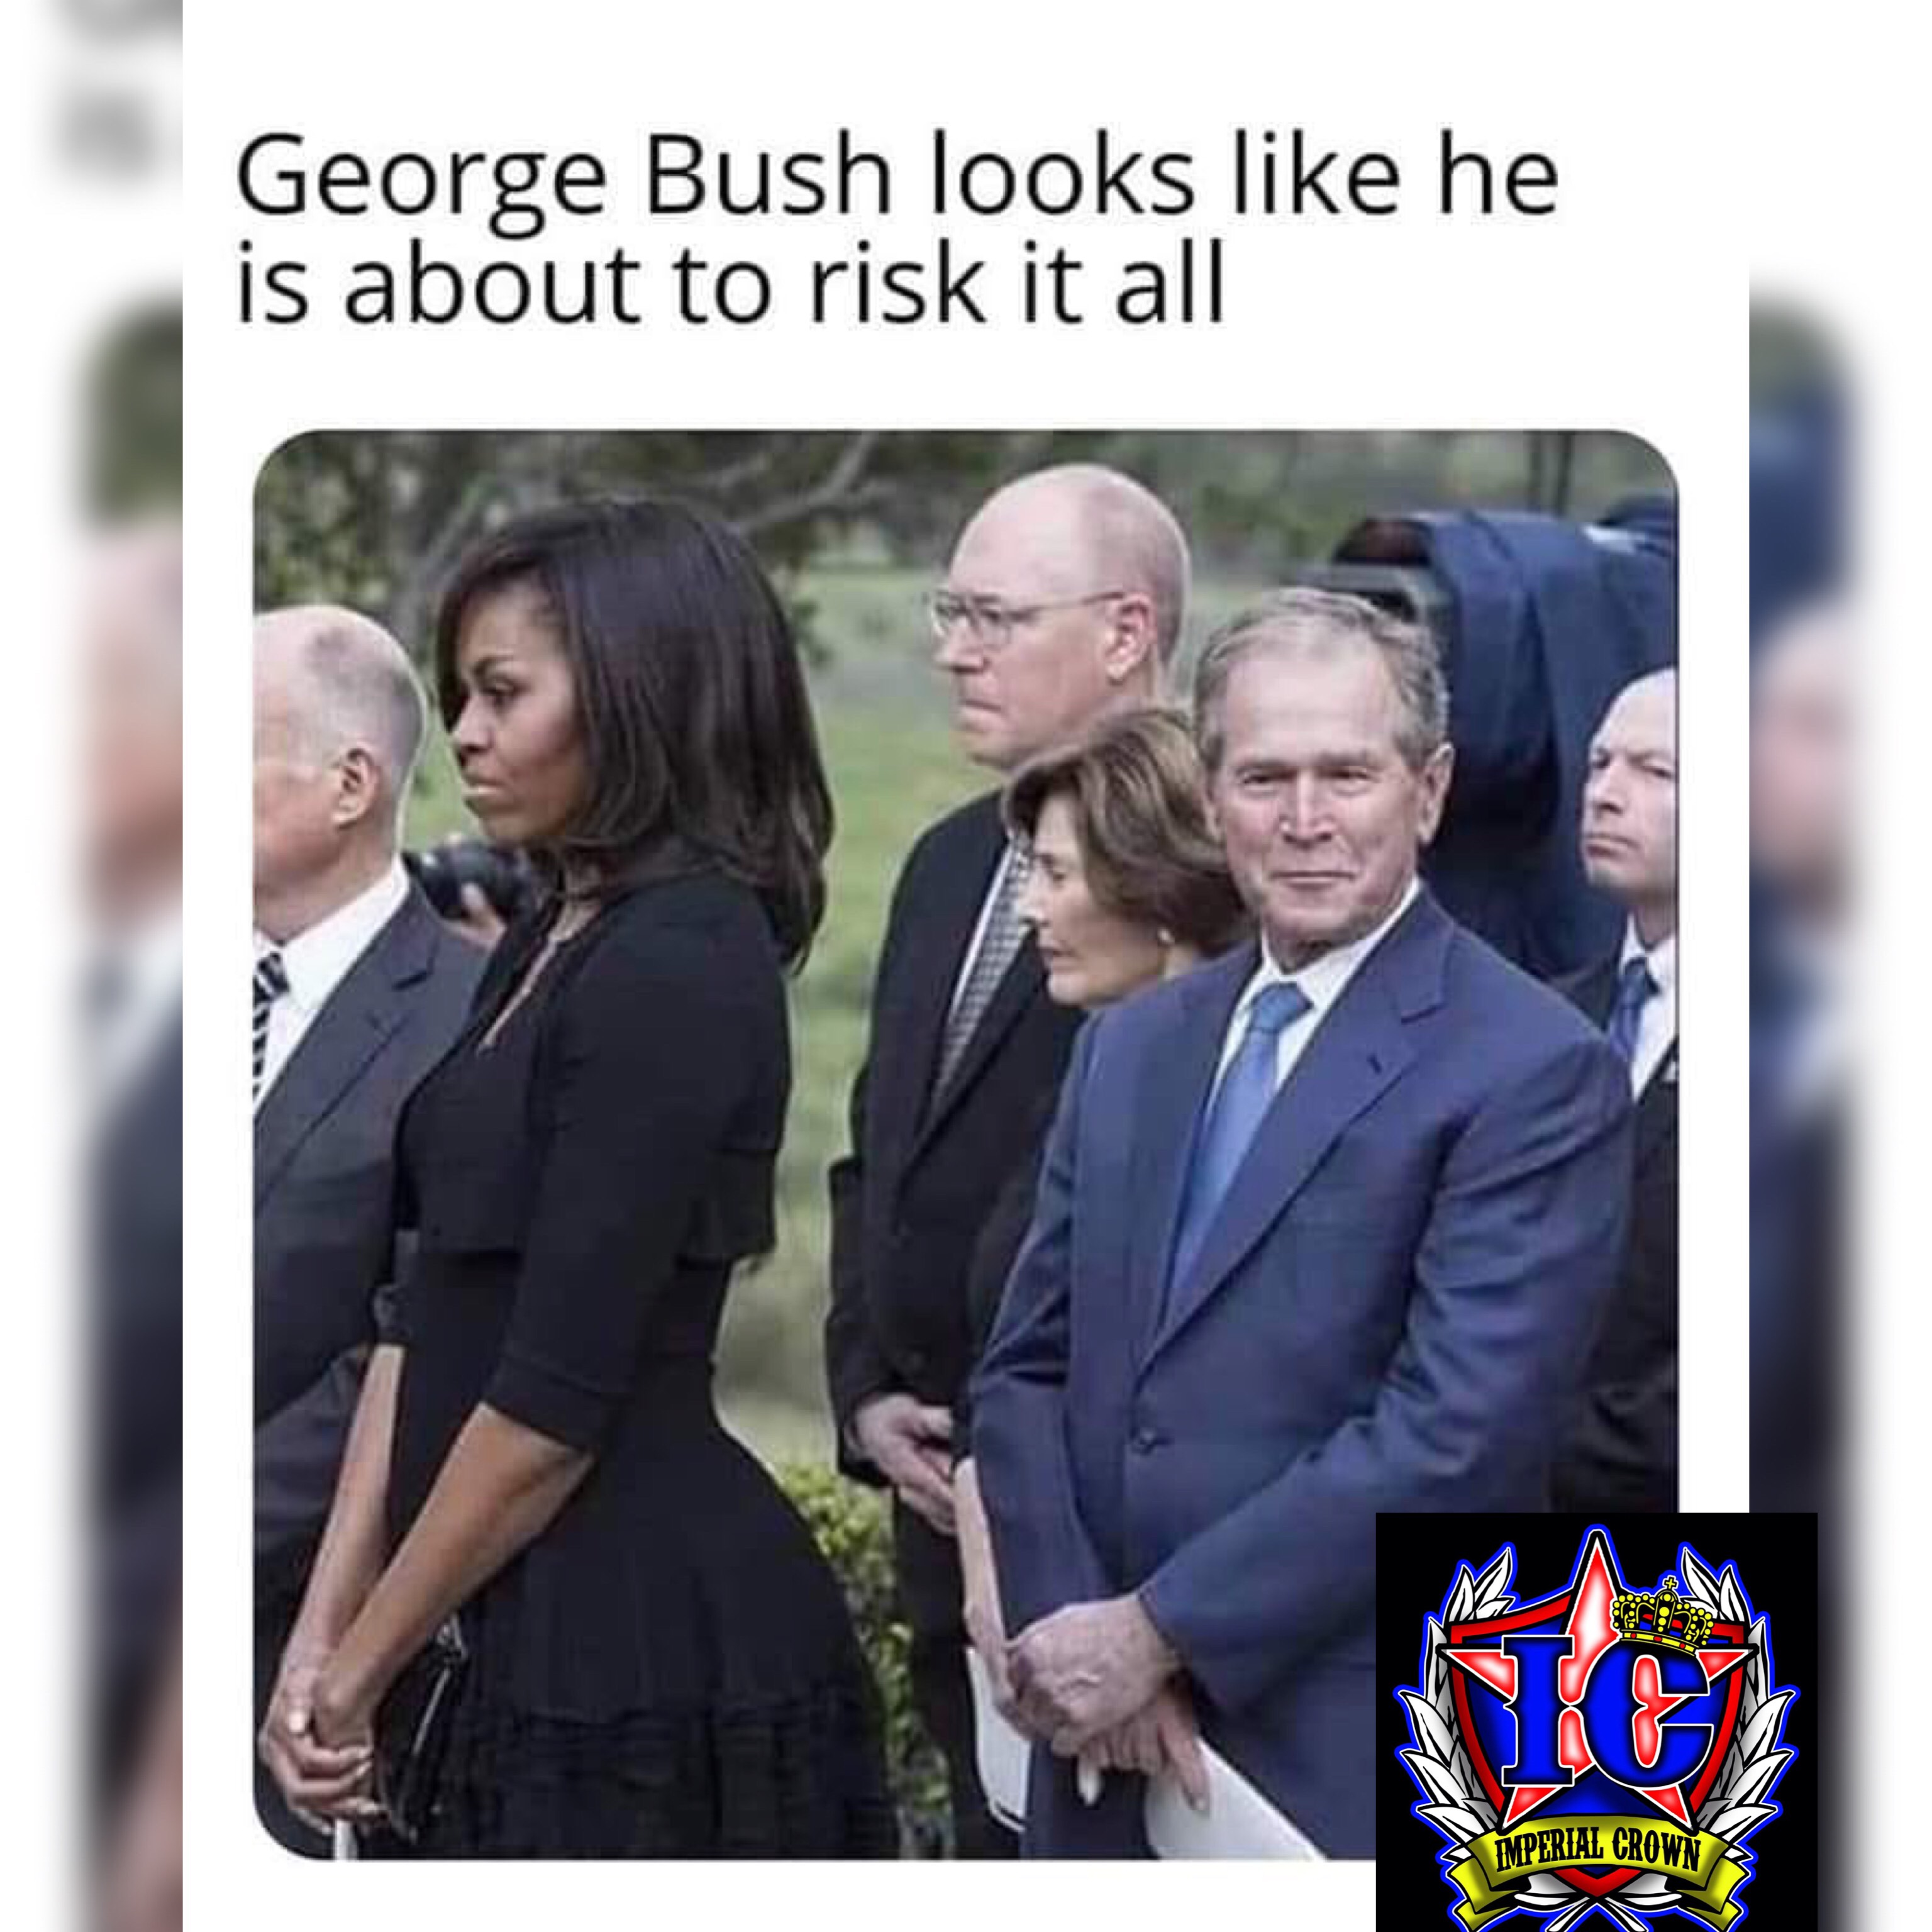 George bush looks like he is about to risk it all